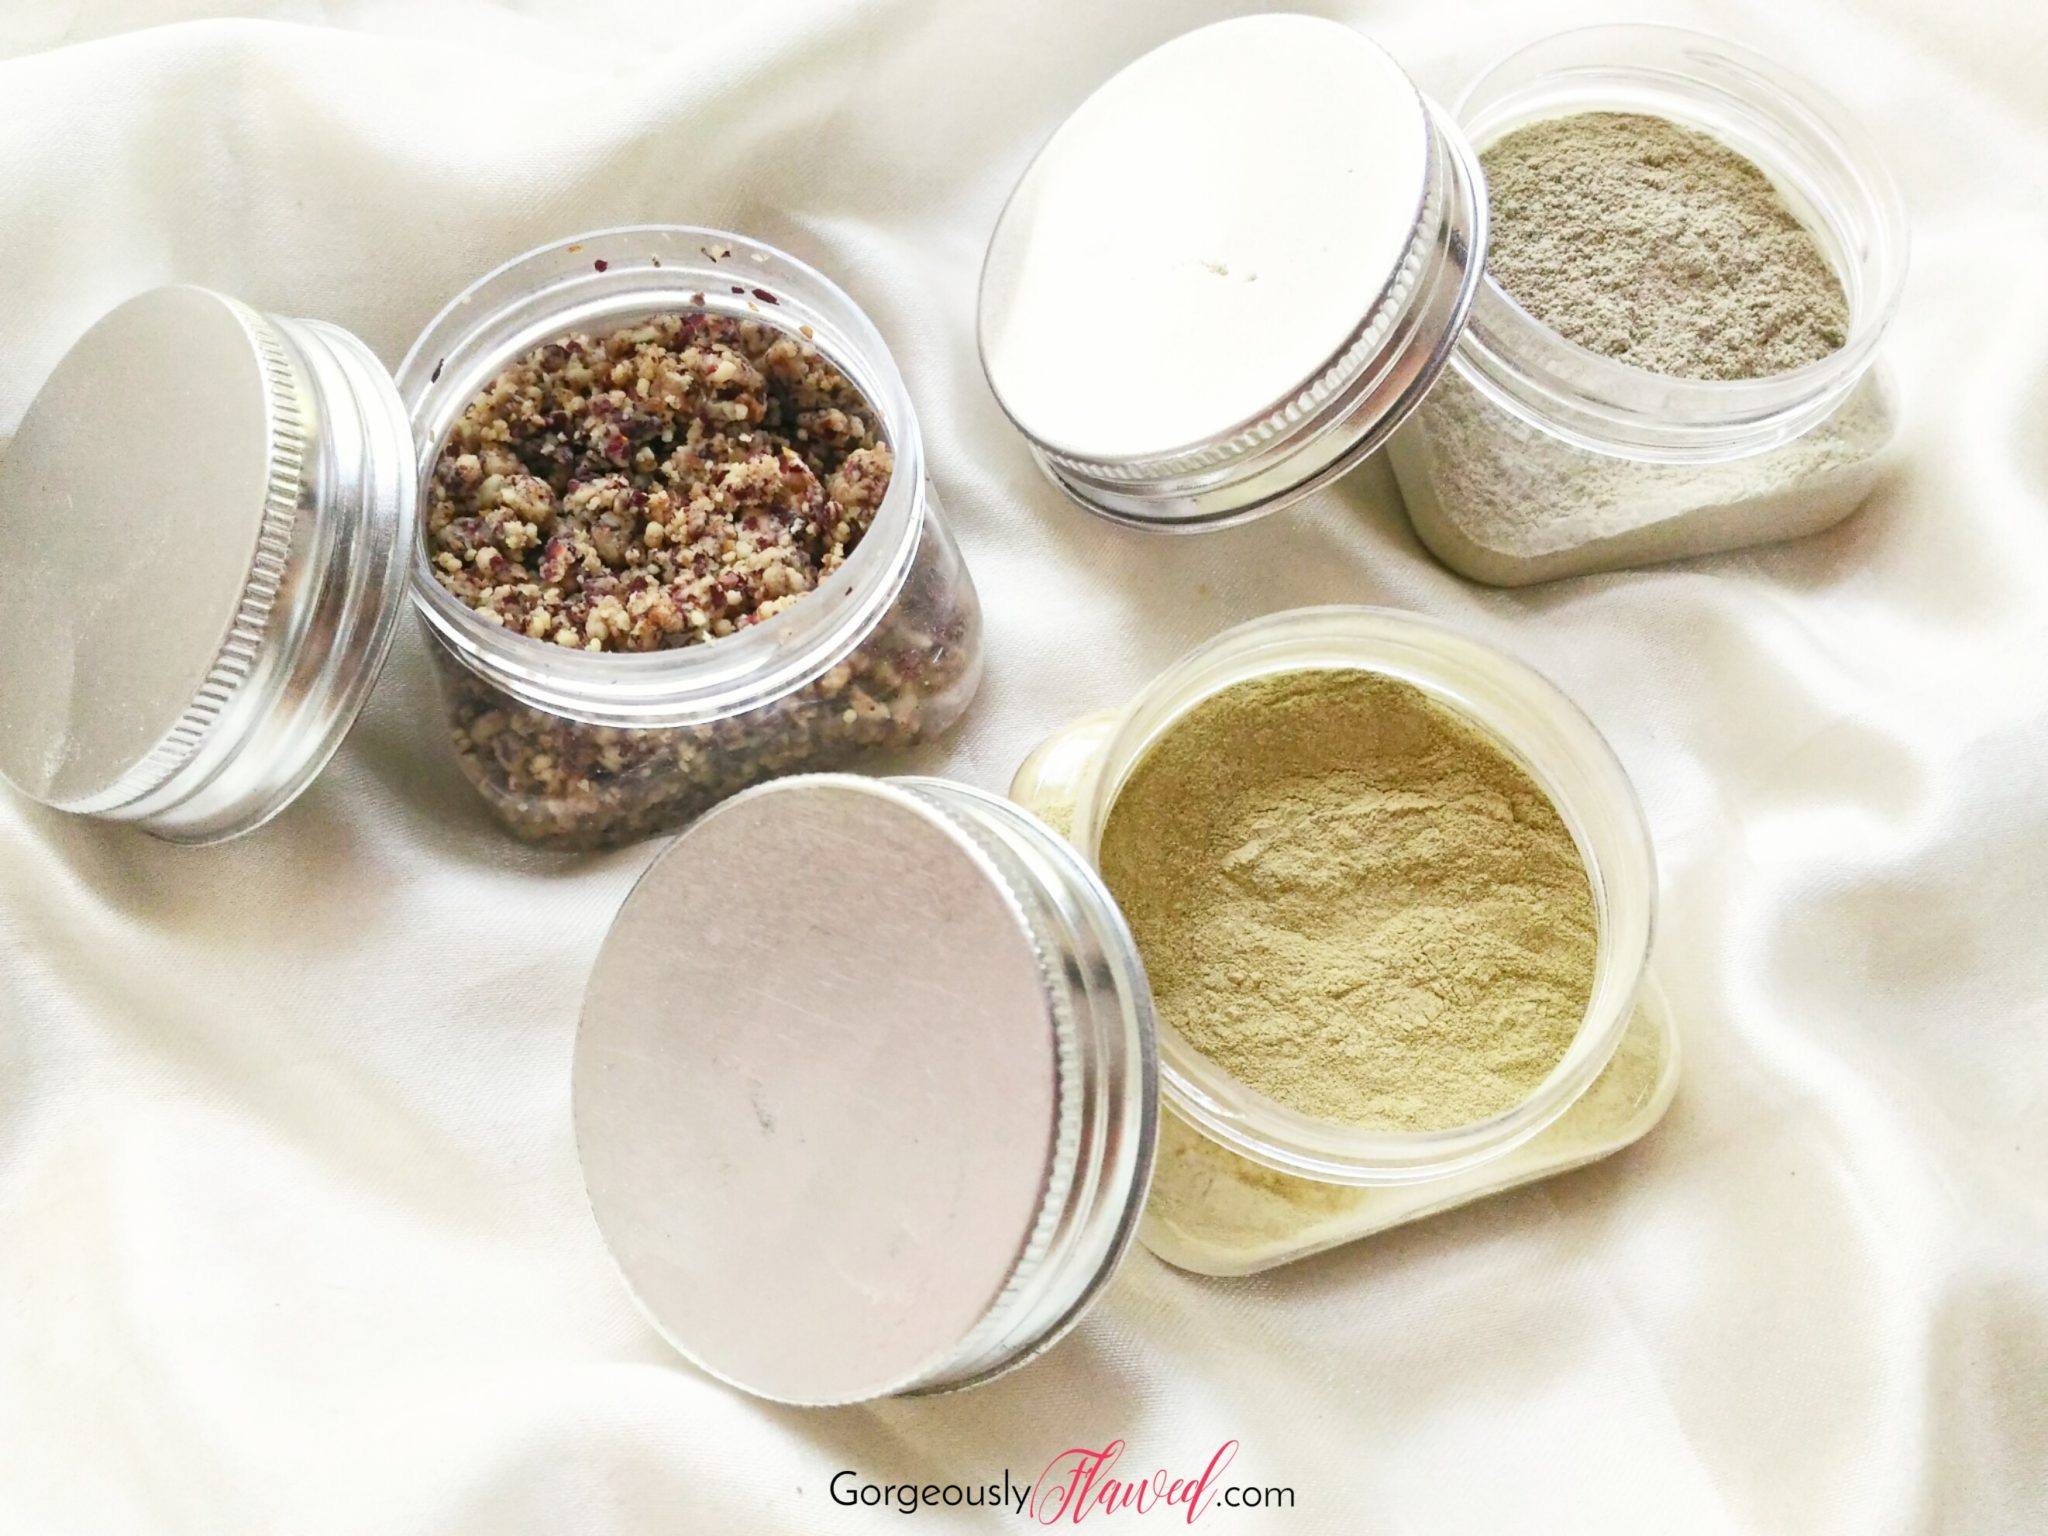 Just Launched | Skincare Villa Natural & Handmade Skincare Products